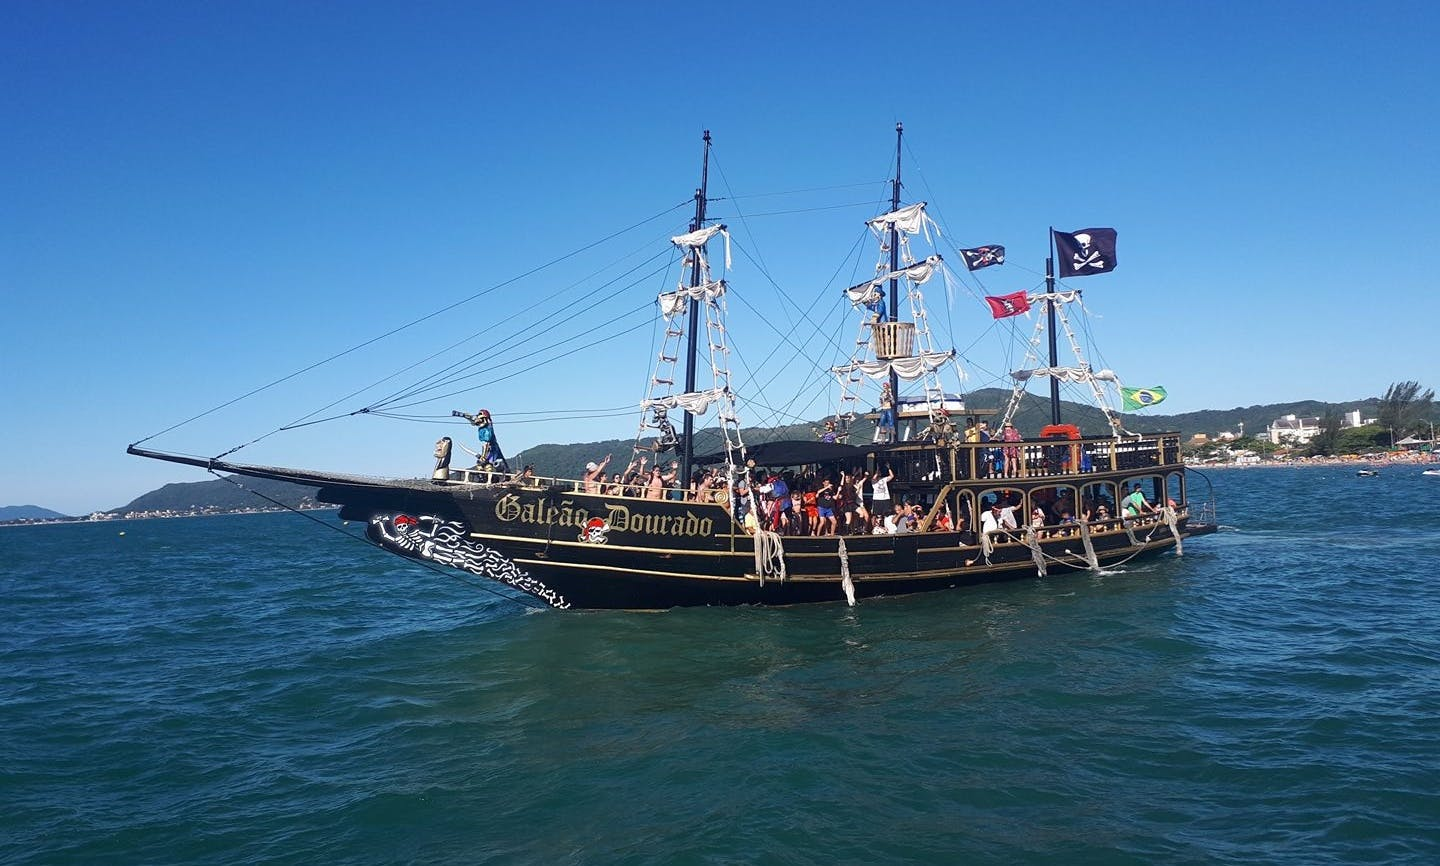 Come With Us On This Sailing Adventure in Santa Catarina, Brazil